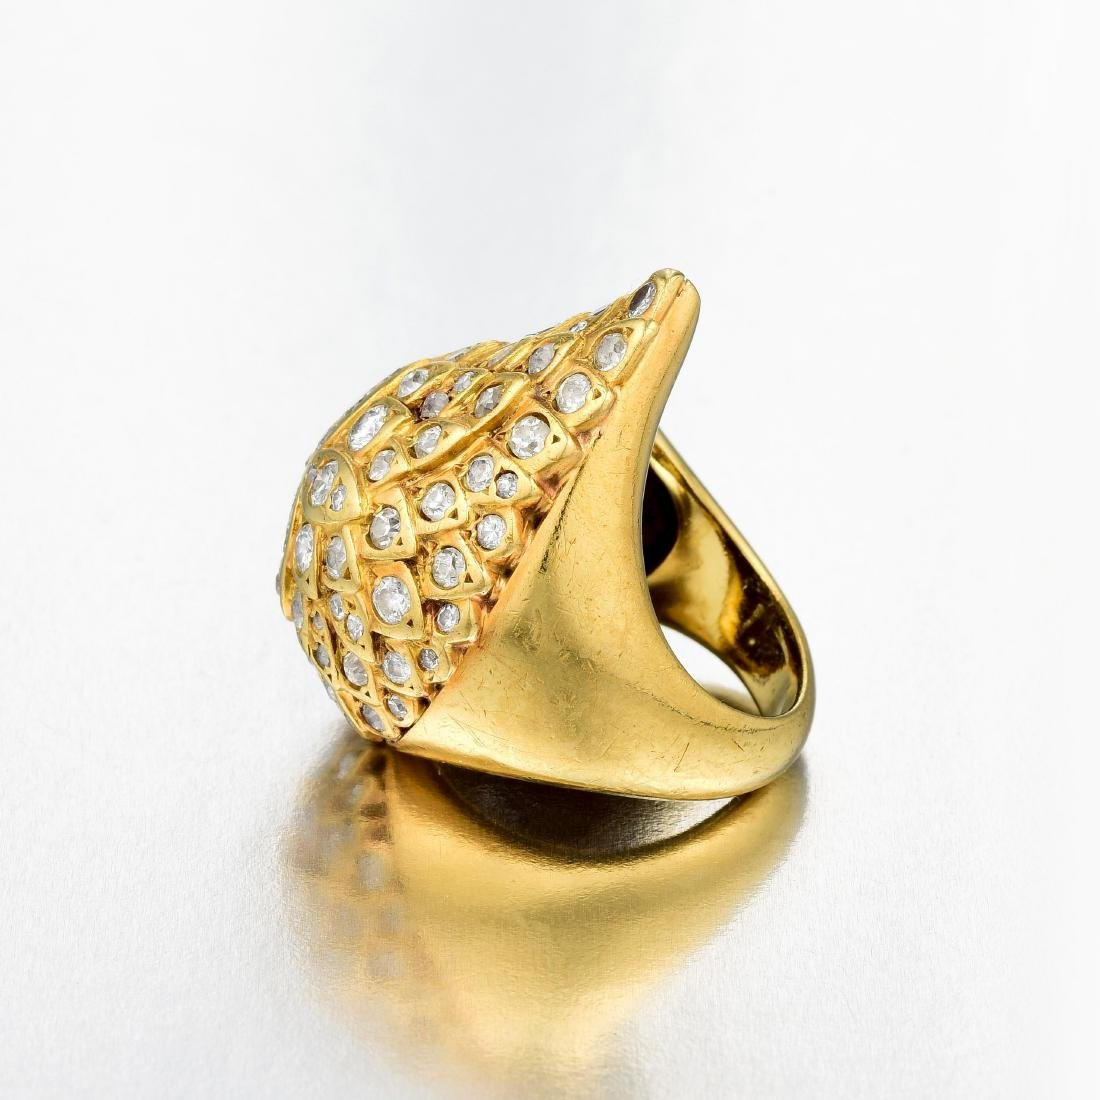 A Modified Gold and Diamond Ring - 3